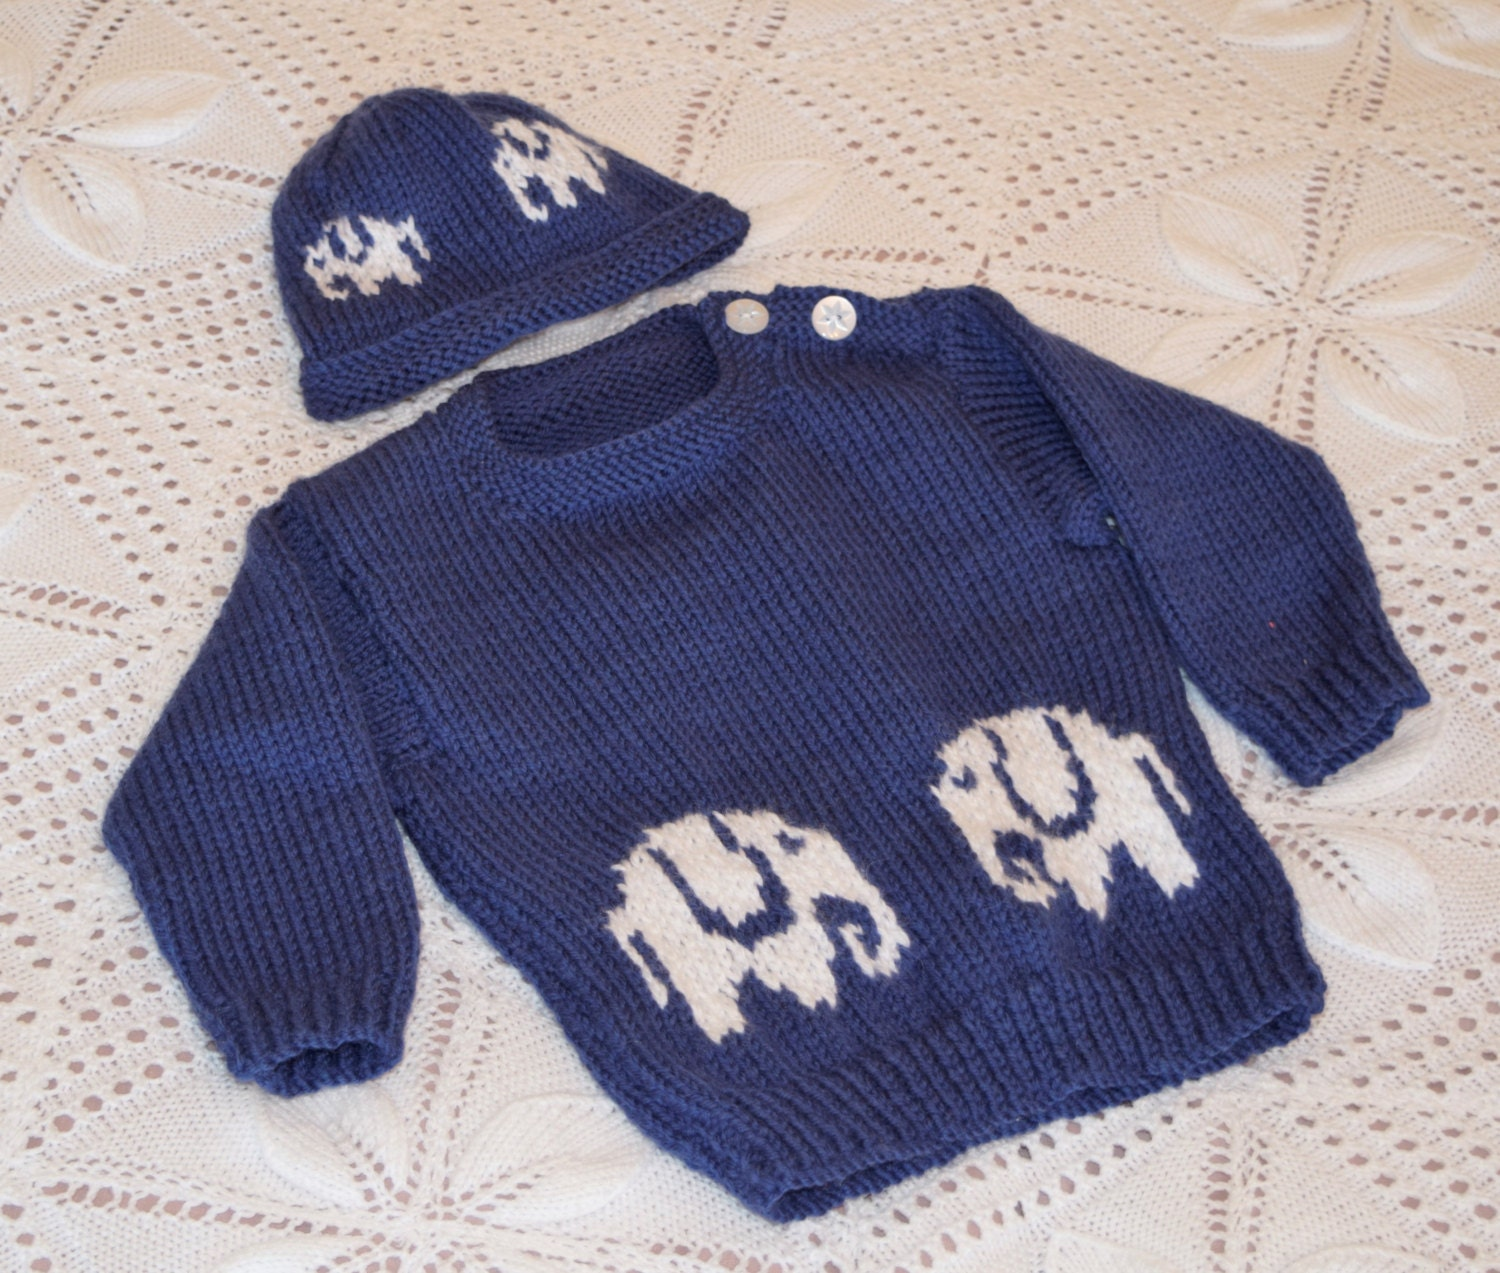 Knitting Jumpers For Elephants Fake : Baby sweater and hat knitting pattern with elephants aran